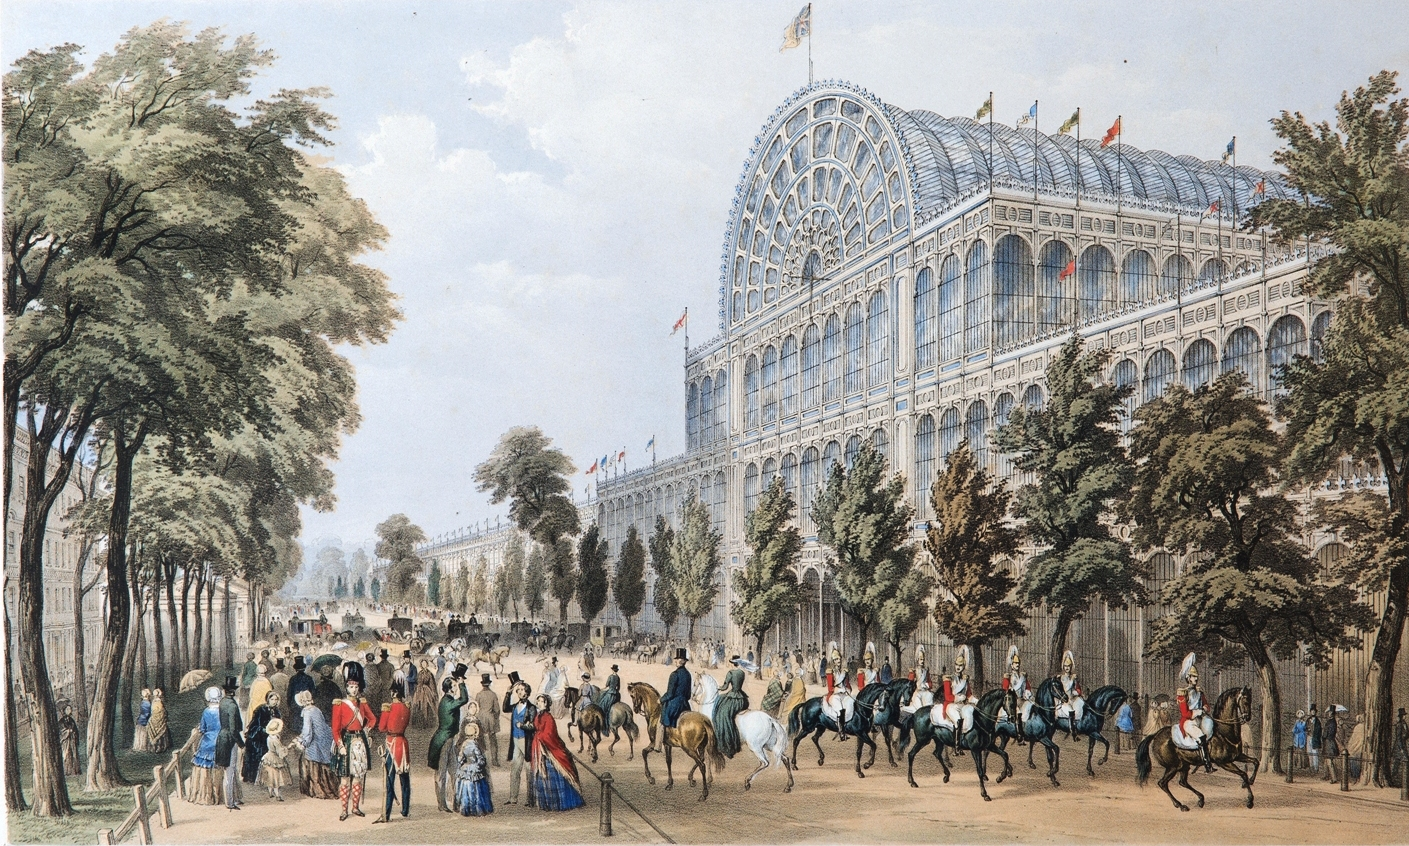 The Crystal Palace is believed to have been the largest building on Earth when it opened in 1851.